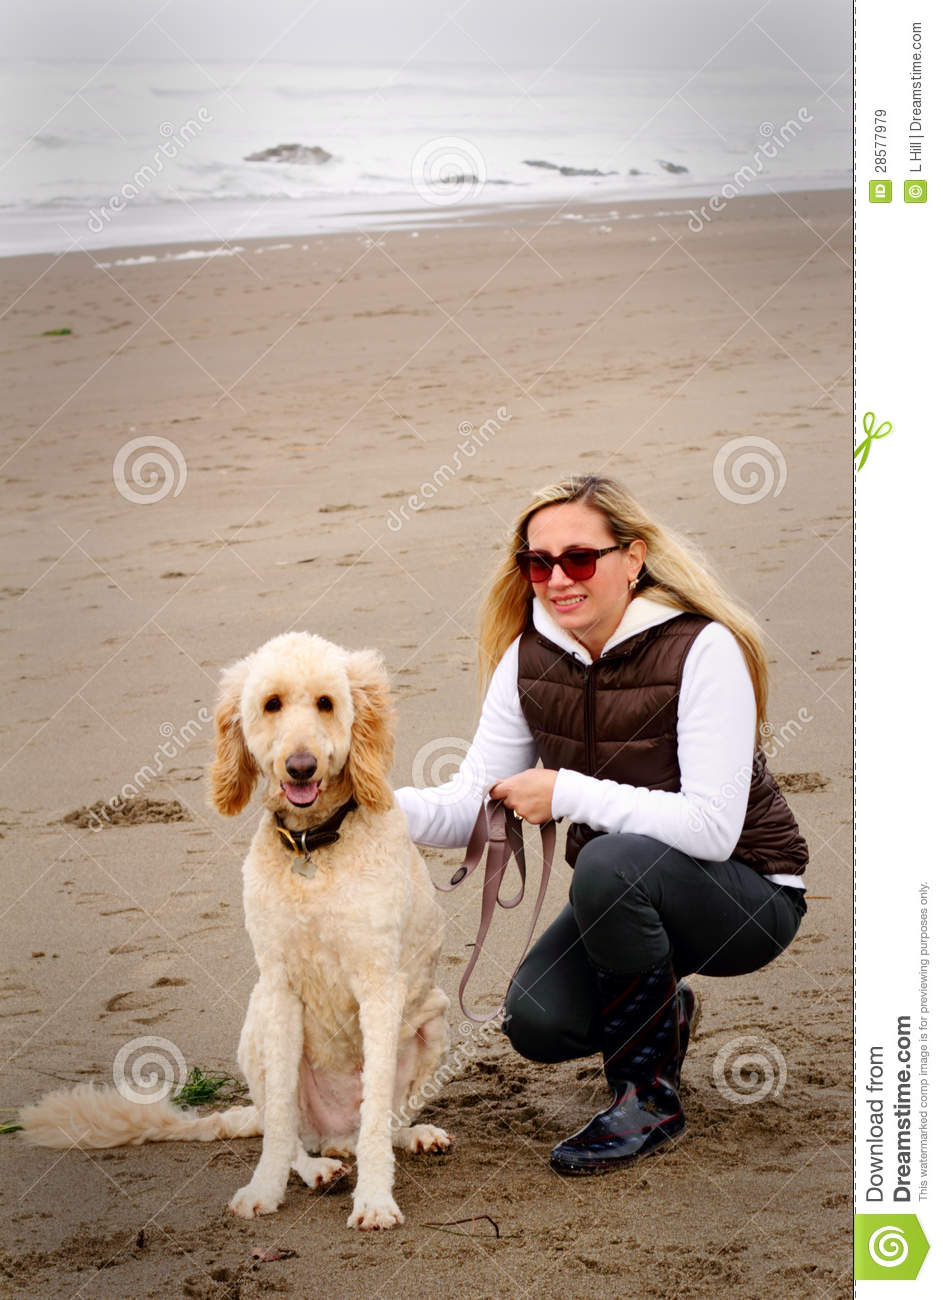 young lady with dog royalty free stock images